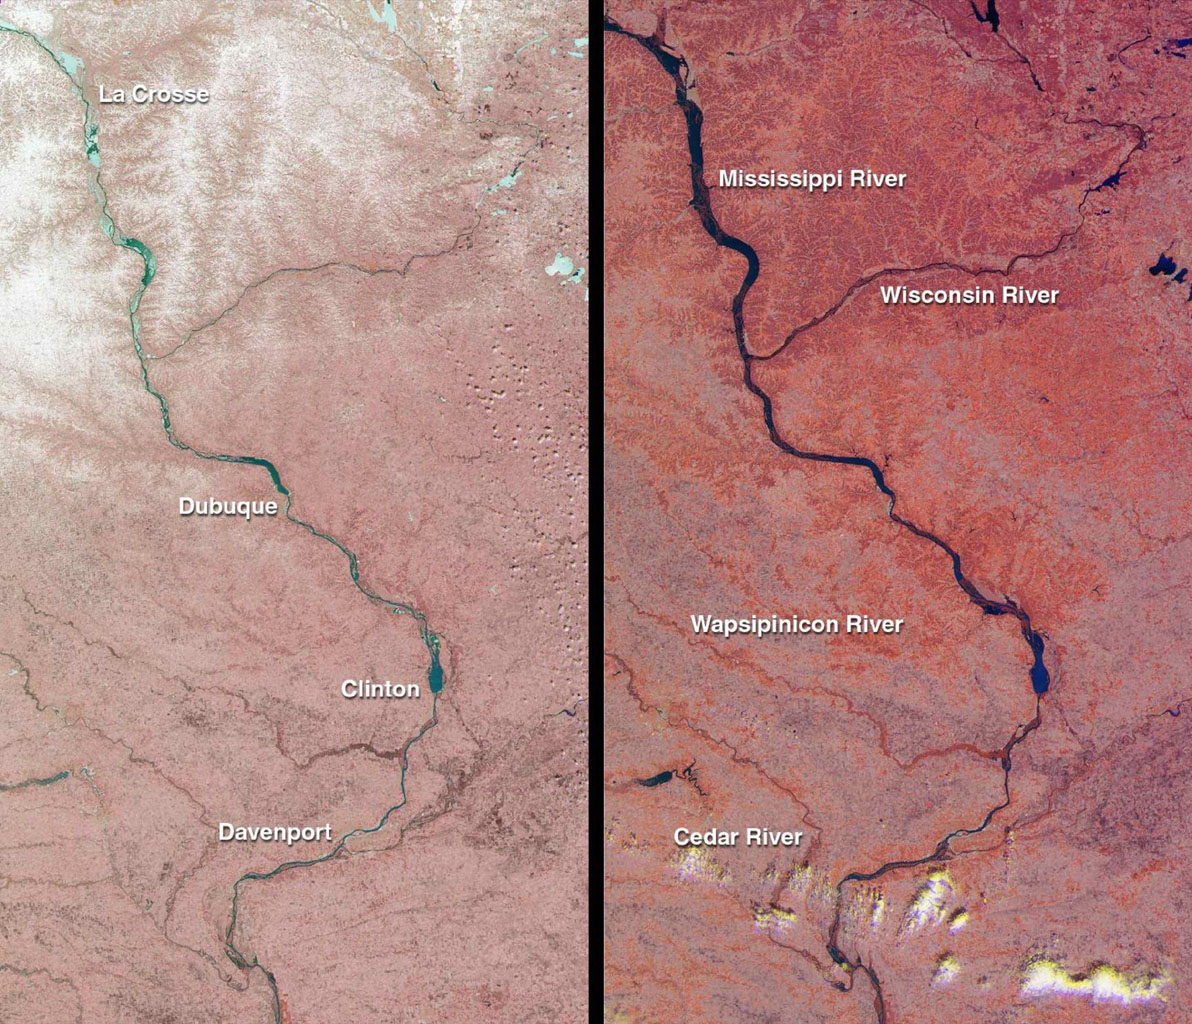 The mighty Mississippi River, from its source at Lake Itasca, Minnesota to the Gulf of Mexico, is approximately 3780 kilometers long and has flooded many times during its history. NASA's Terra satellite acquired these images one month apart in 2001.